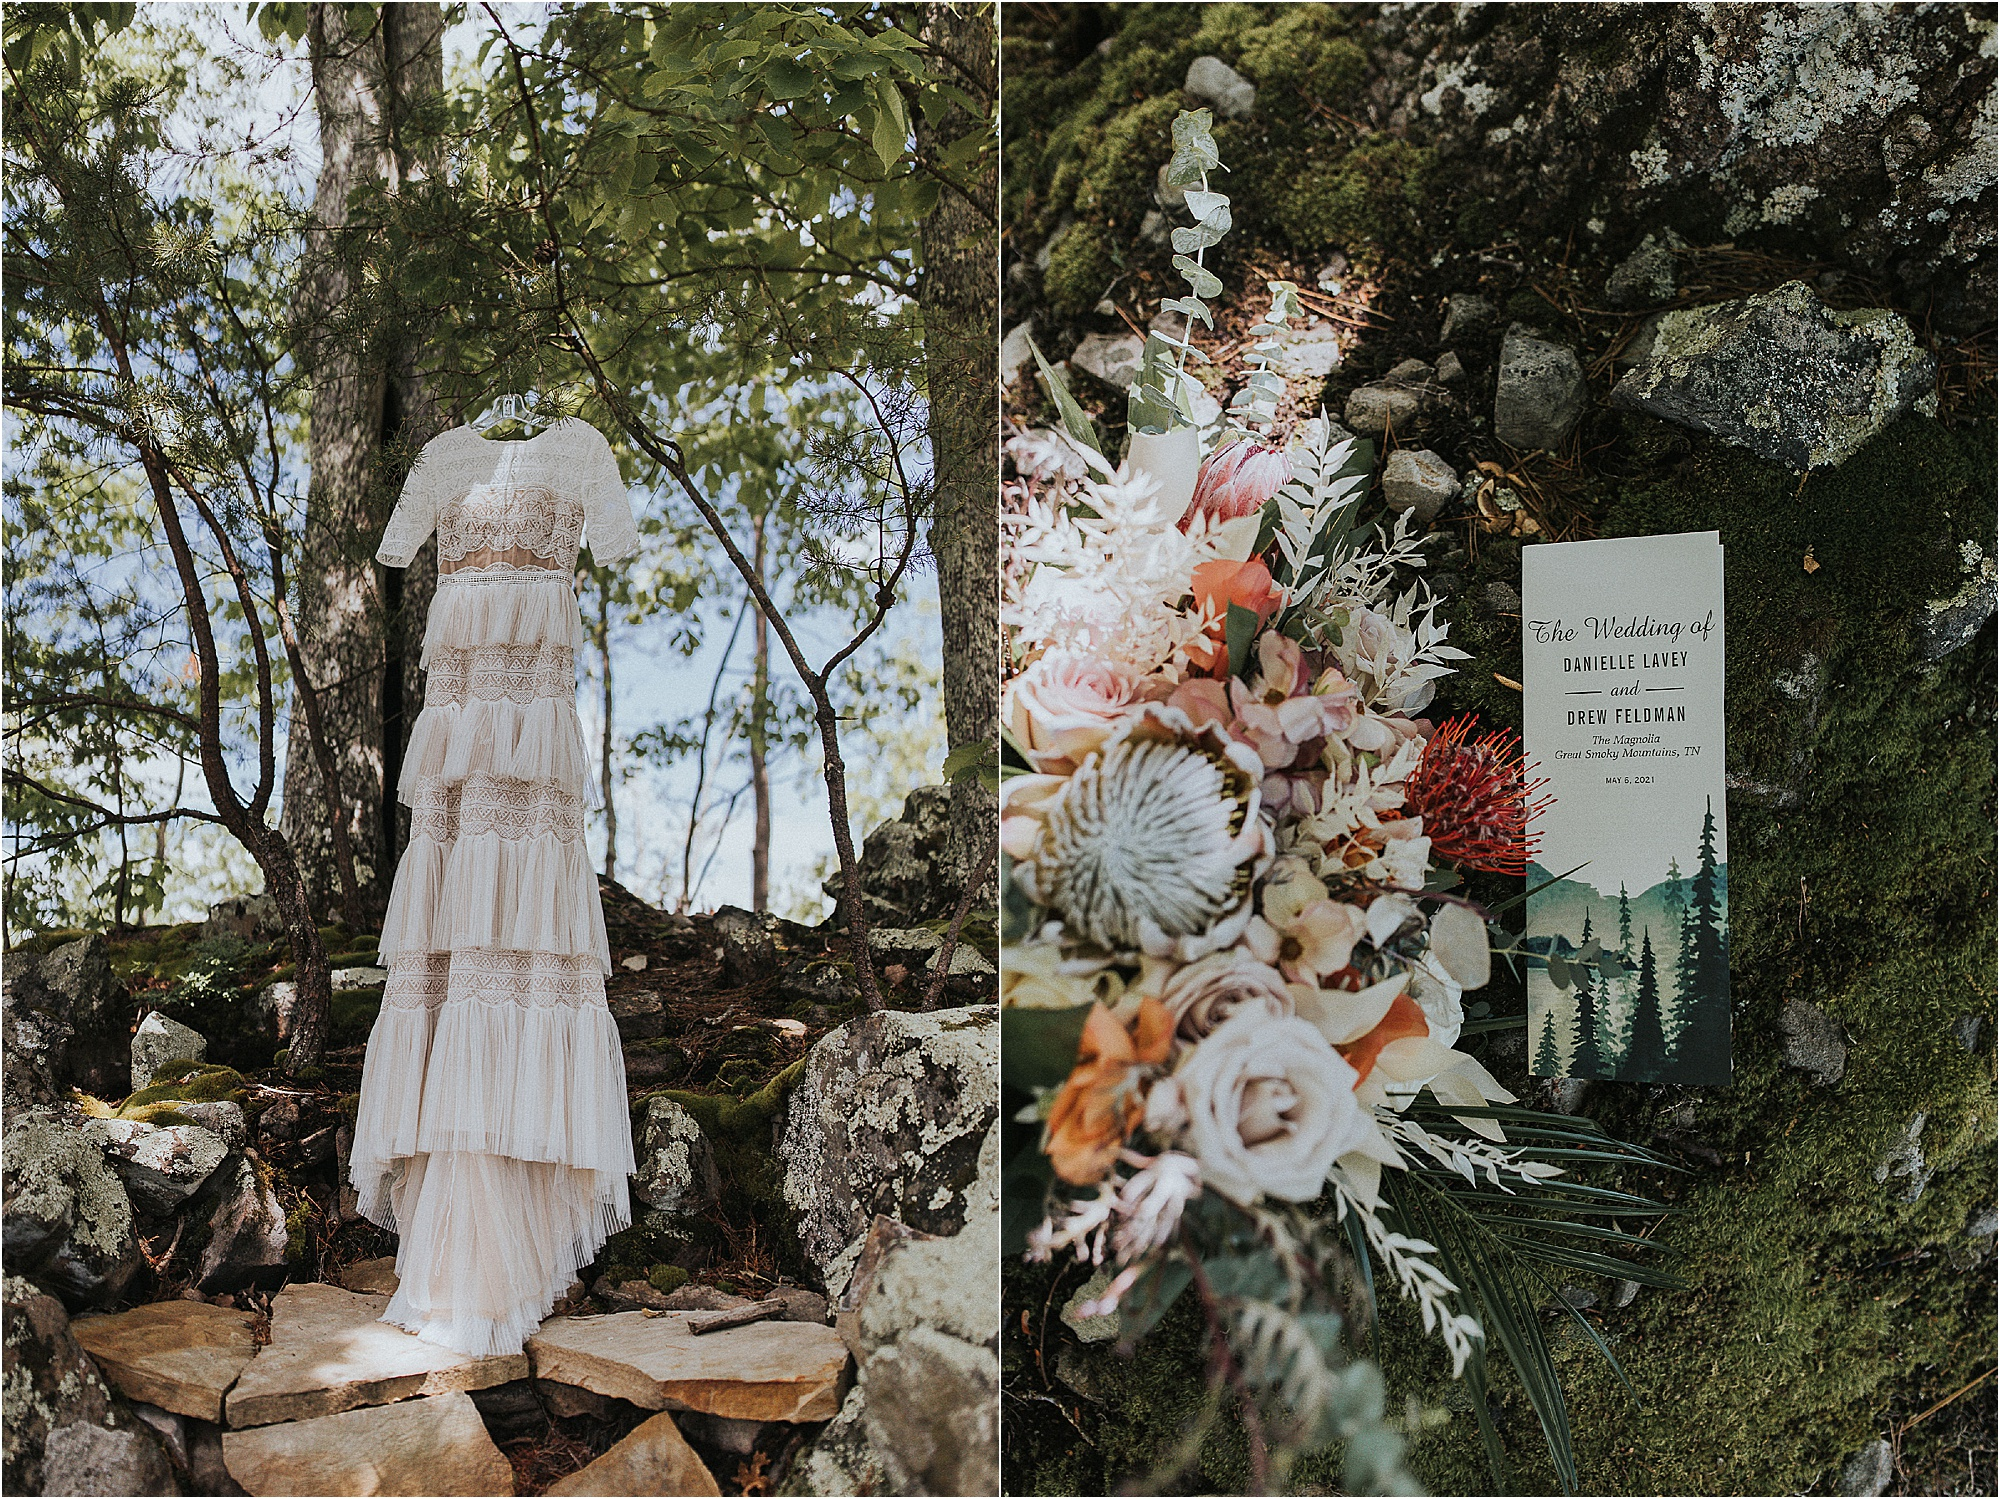 wedding dress hanging in trees and wedding invitation by bouquet